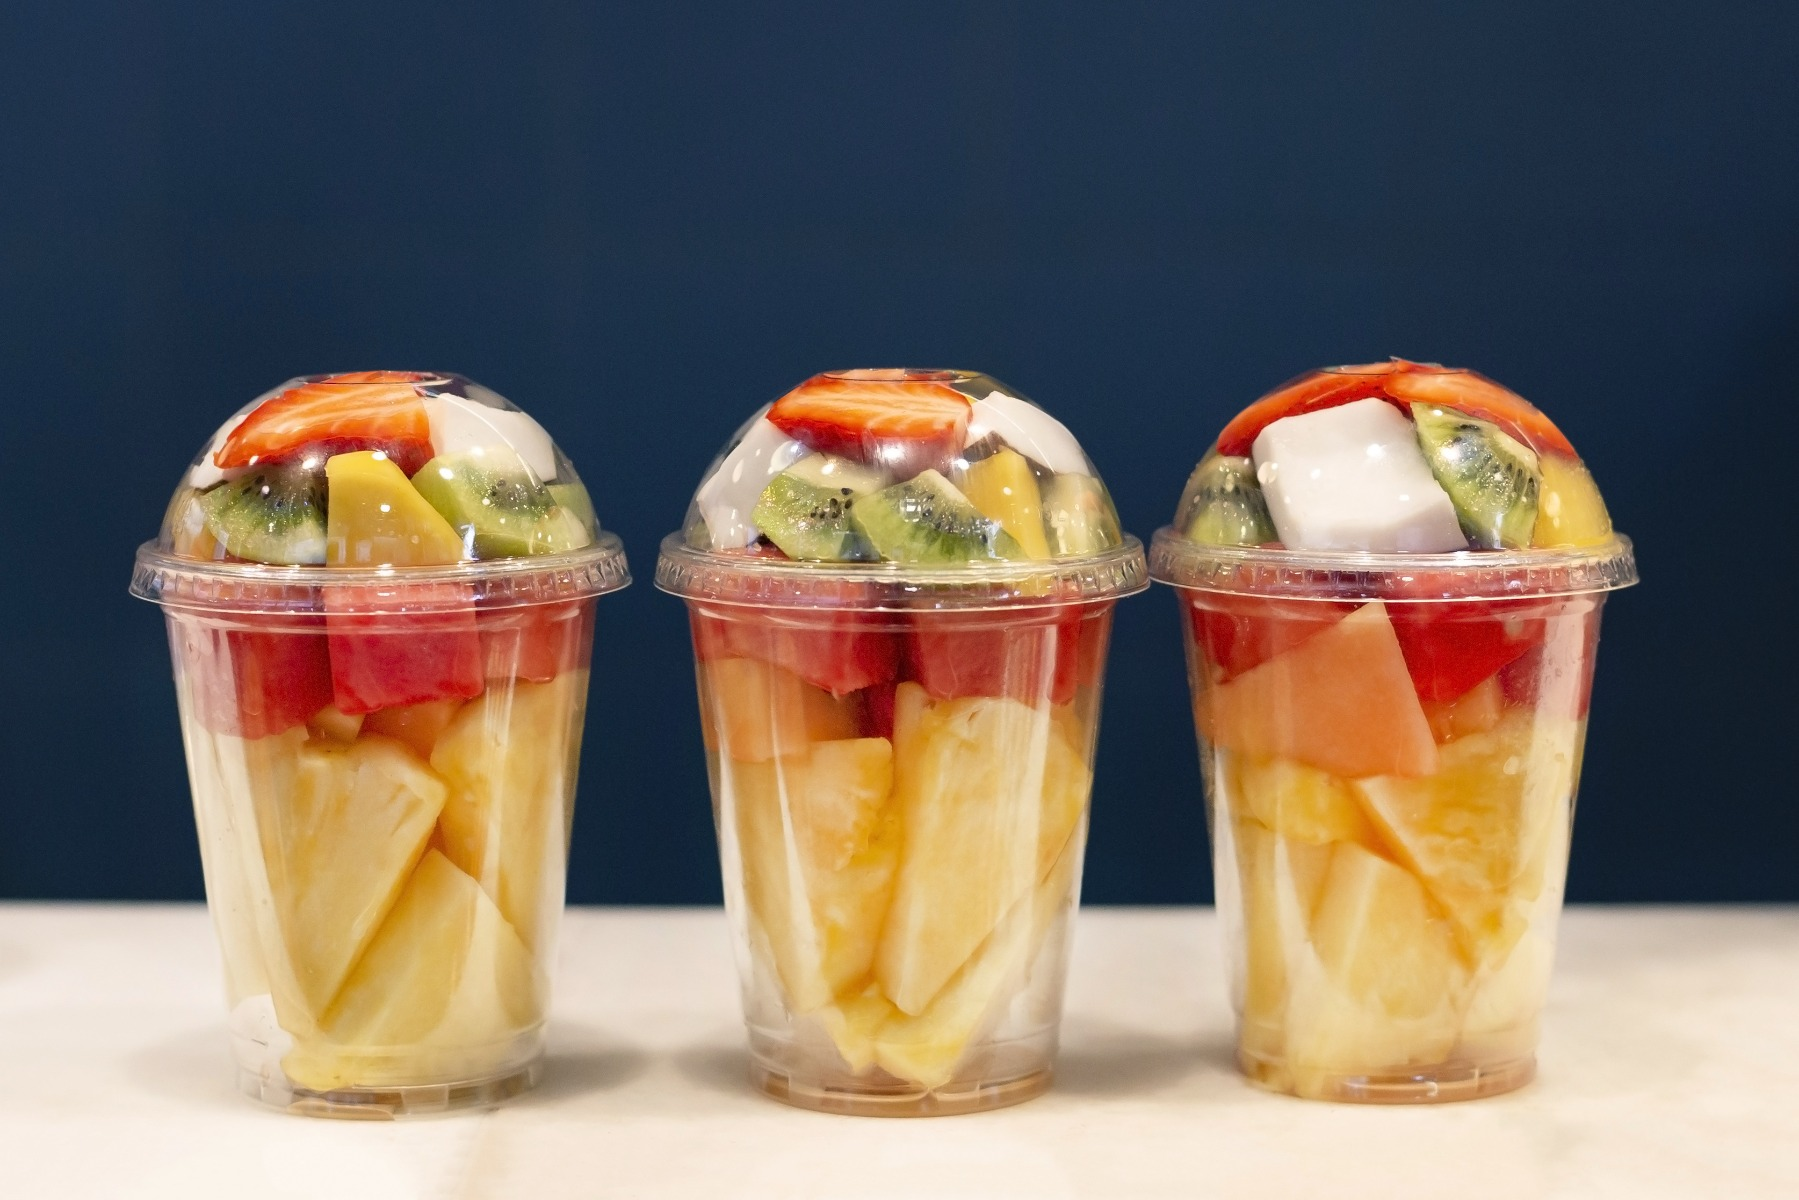 three sets of assorted pre-cut fruits in rigid plastic containers on table